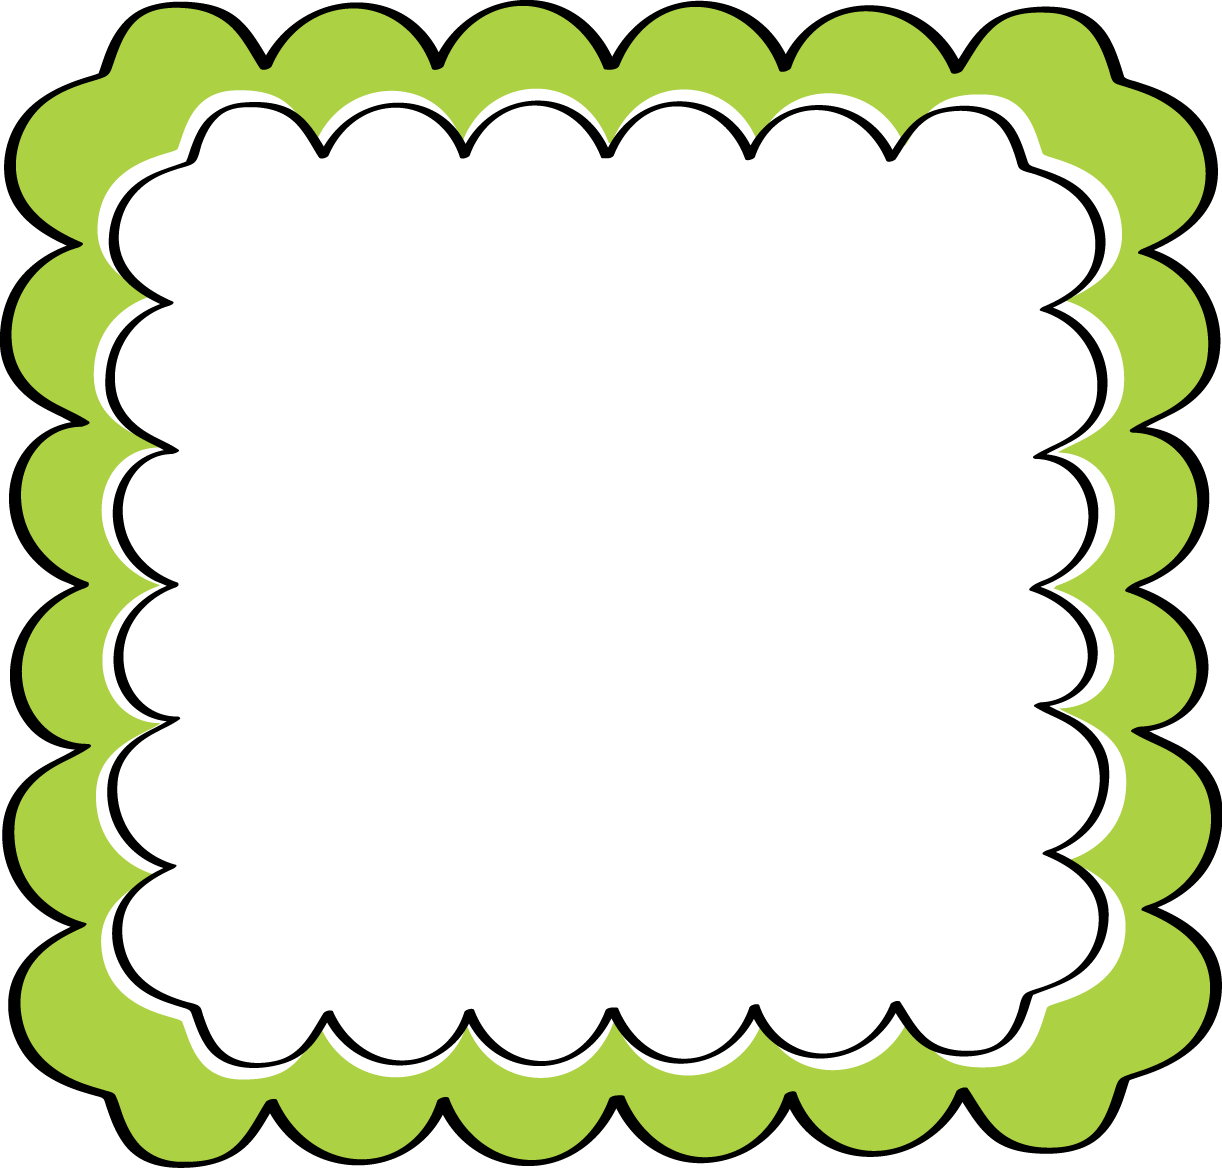 school theme border clipart | Green Scalloped Frame - Free Clip ...